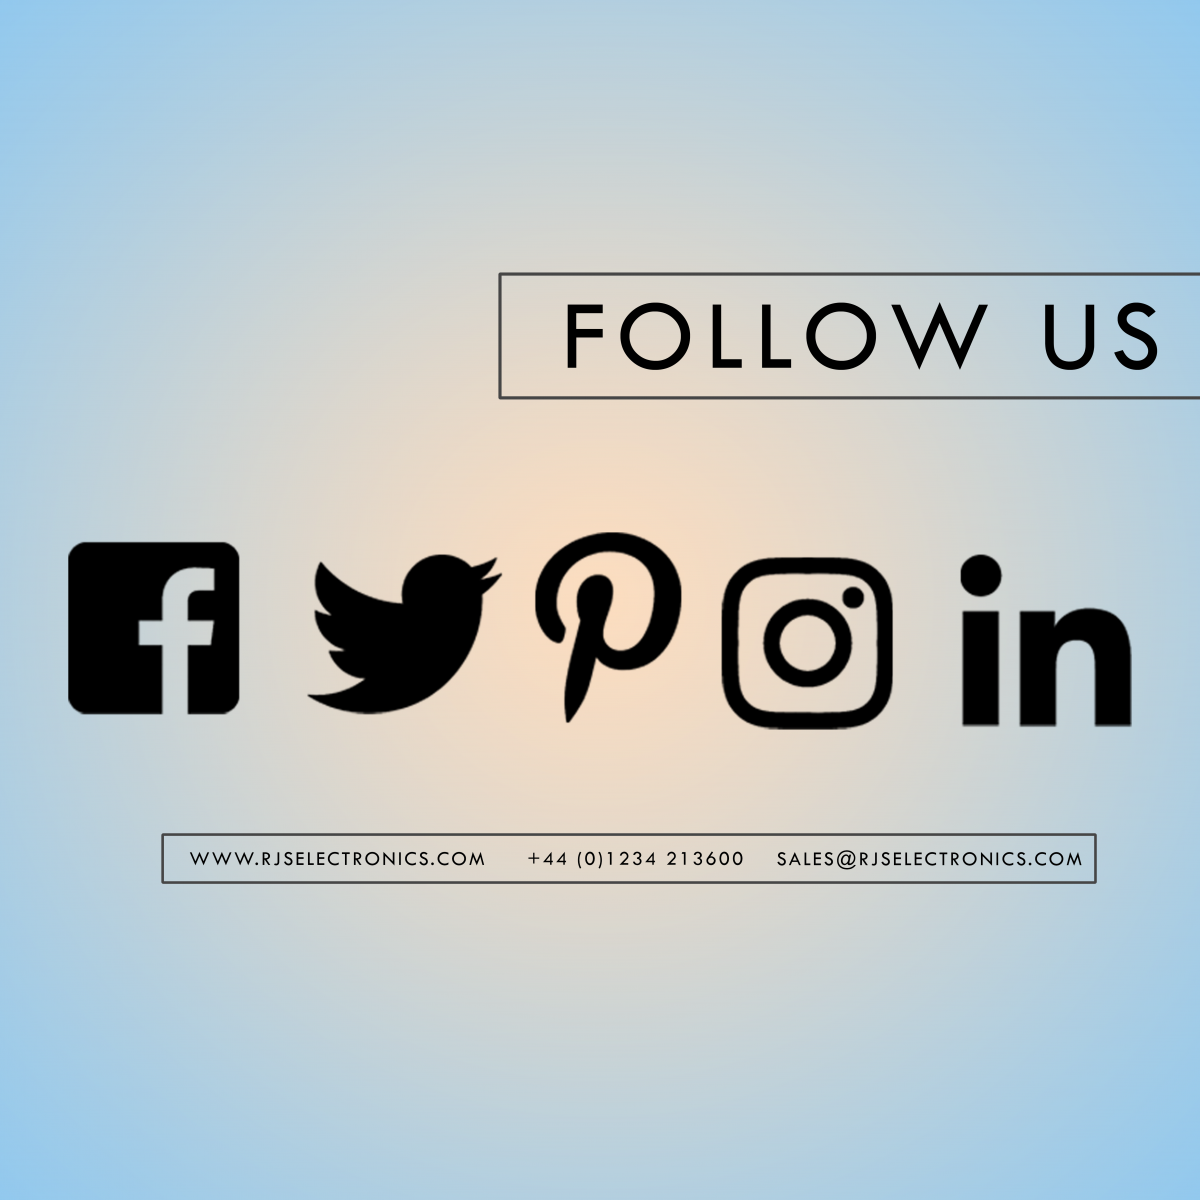 facebook, twitter, pinterest, instagram, linkedin, RJS Electronics Ltd